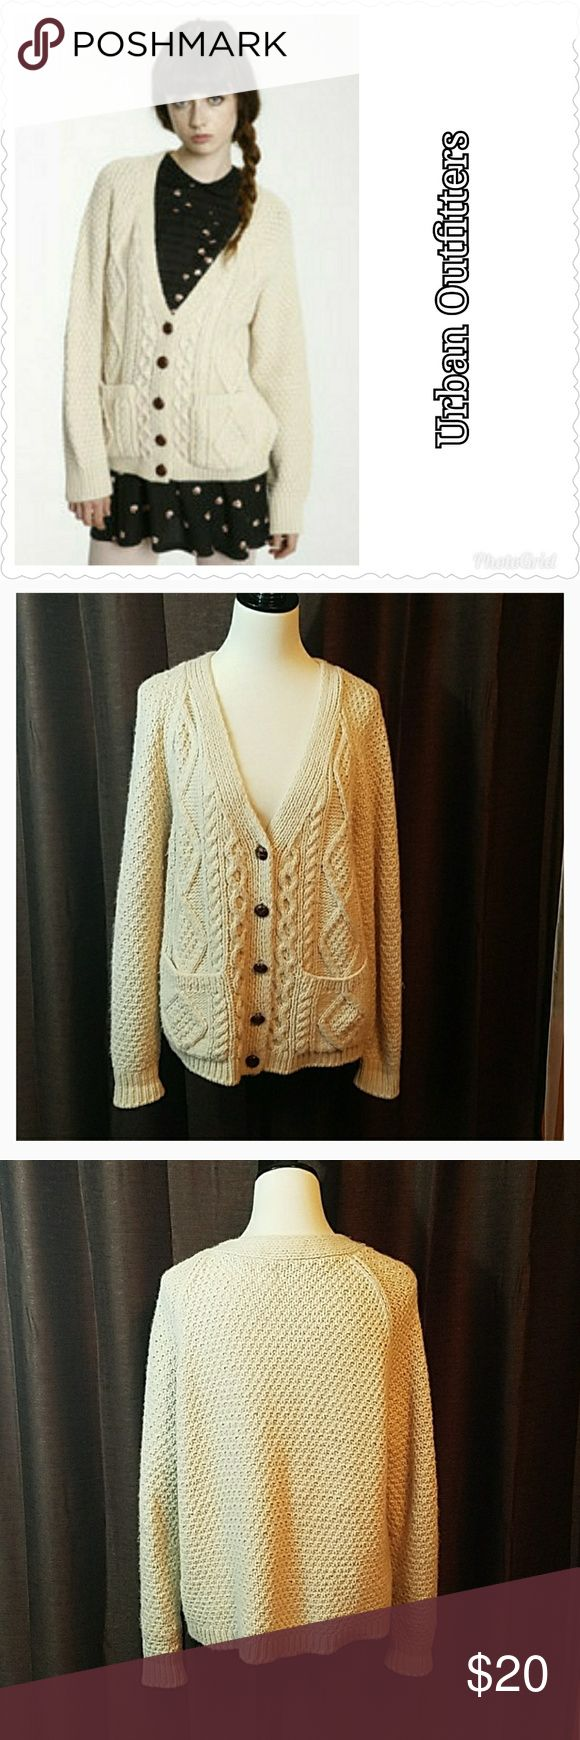 Oversized Grandpa cardigan sweater This cream-colored cardigan sweater is super cute. The brand is Neal Sperling which is from Urban Outfitters. With a cable knit pattern on the front and large brown buttons. Two pockets on the front. Excellent used condition. Please feel free to ask questions about fit and style before purchasing. Urban Outfitters Sweaters Cardigans